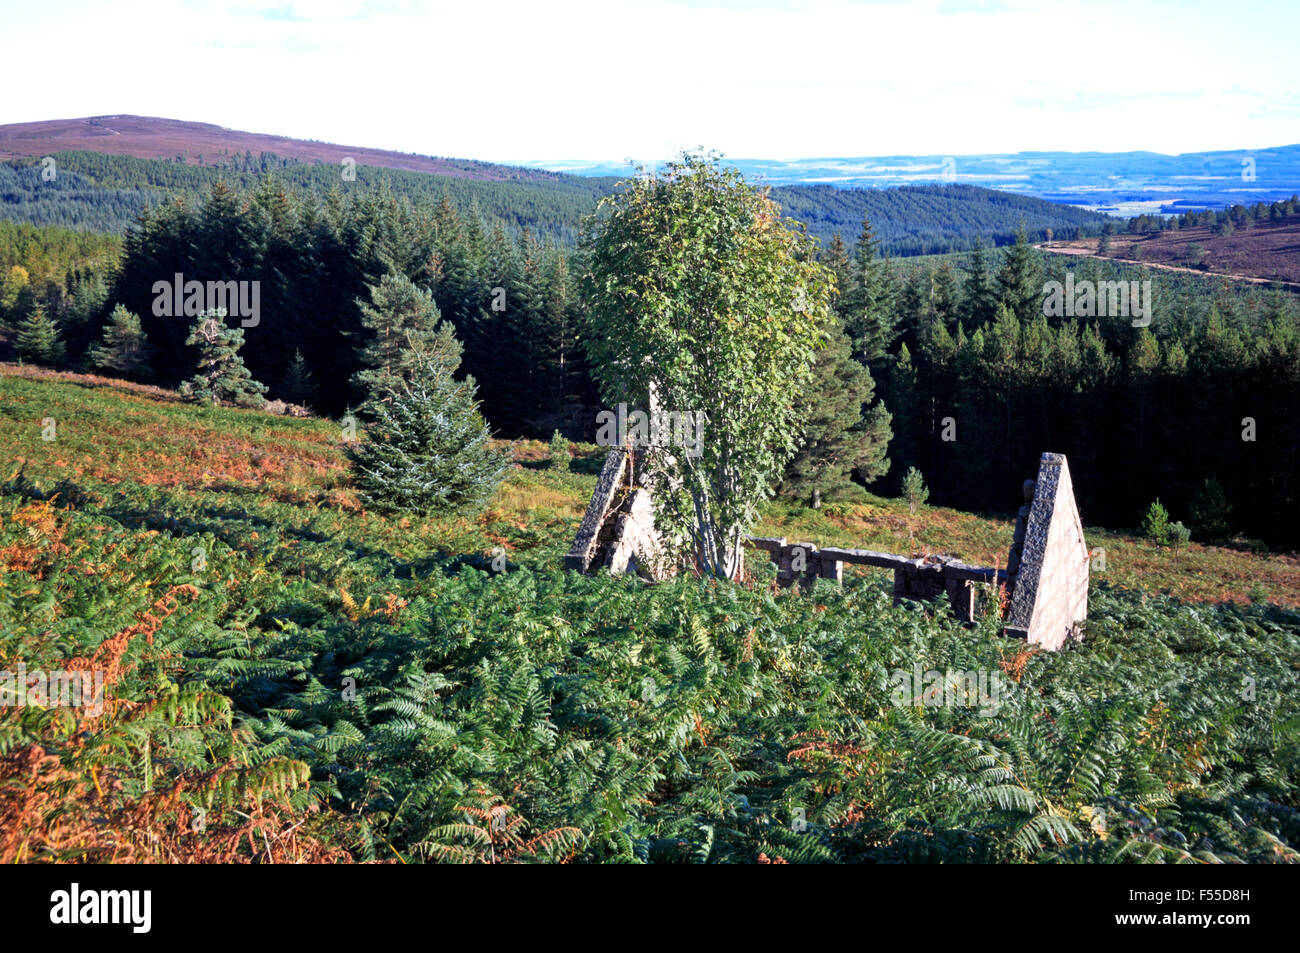 A ruined cottage on the upward slopes to the Hill of Fare near Banchory, Aberdeenshire, Scotland, United Kingdom. - Stock Image